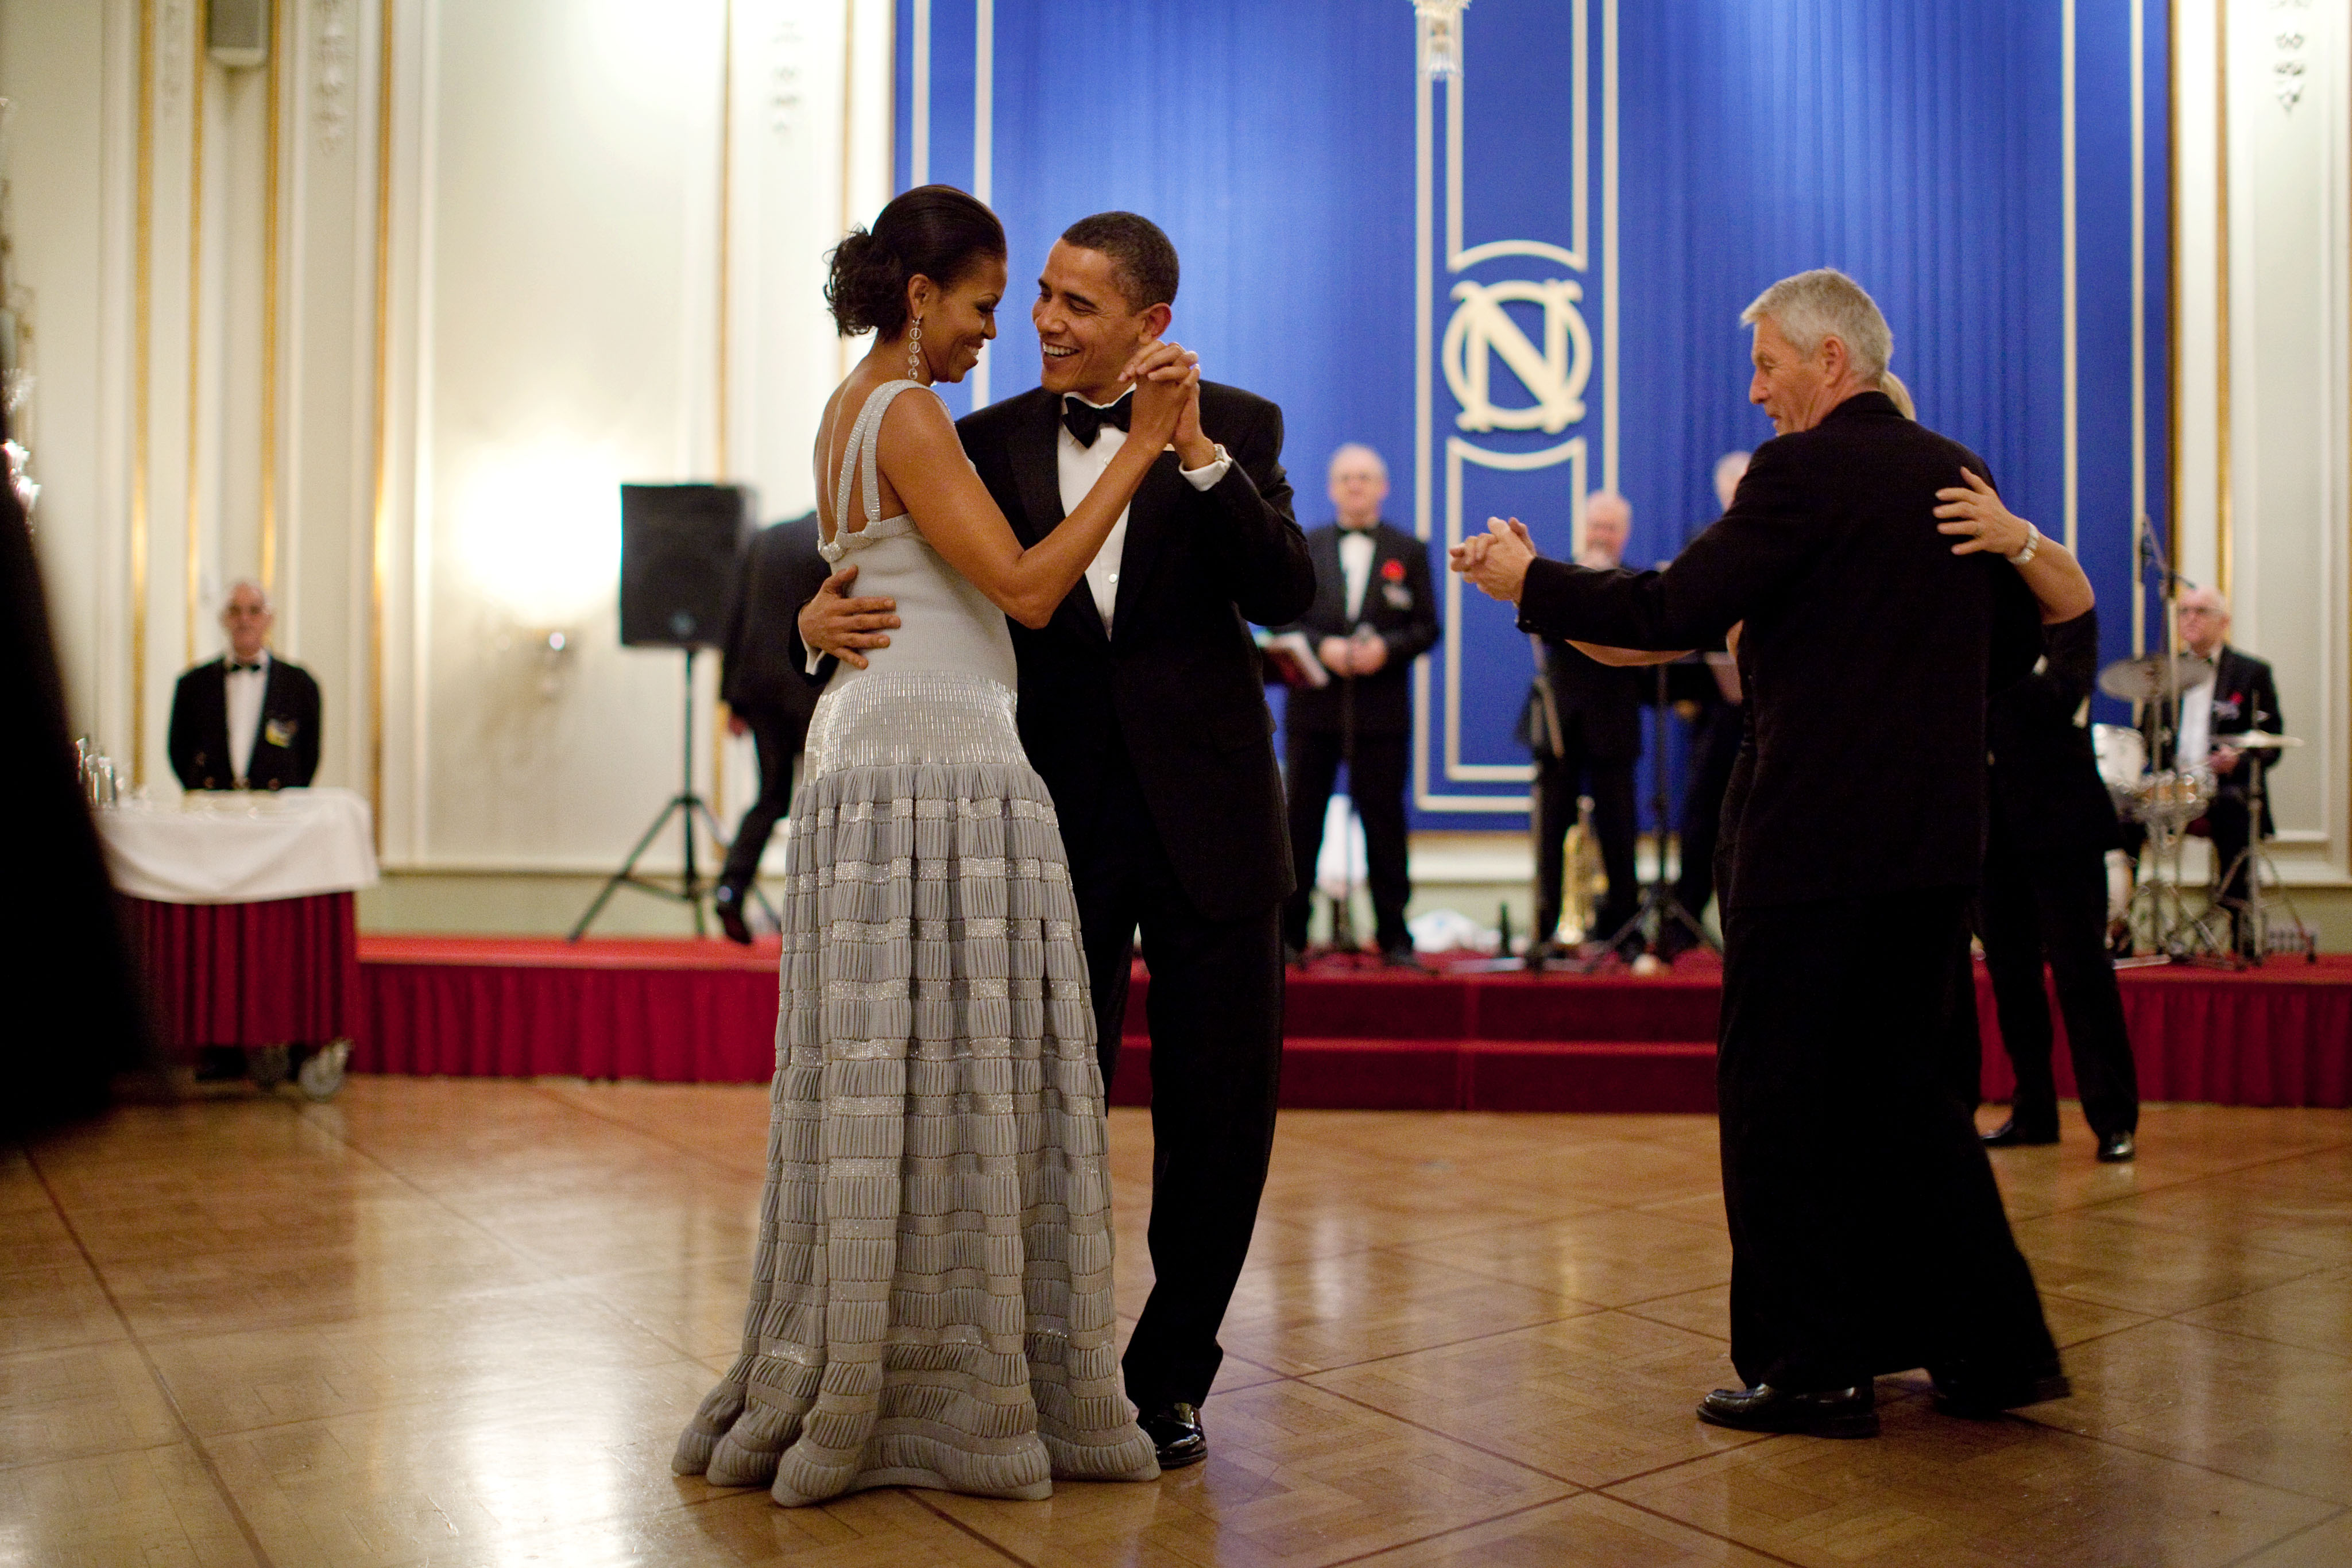 President Barack Obama and First Lady Michelle Obama Dance during the Nobel Banquet